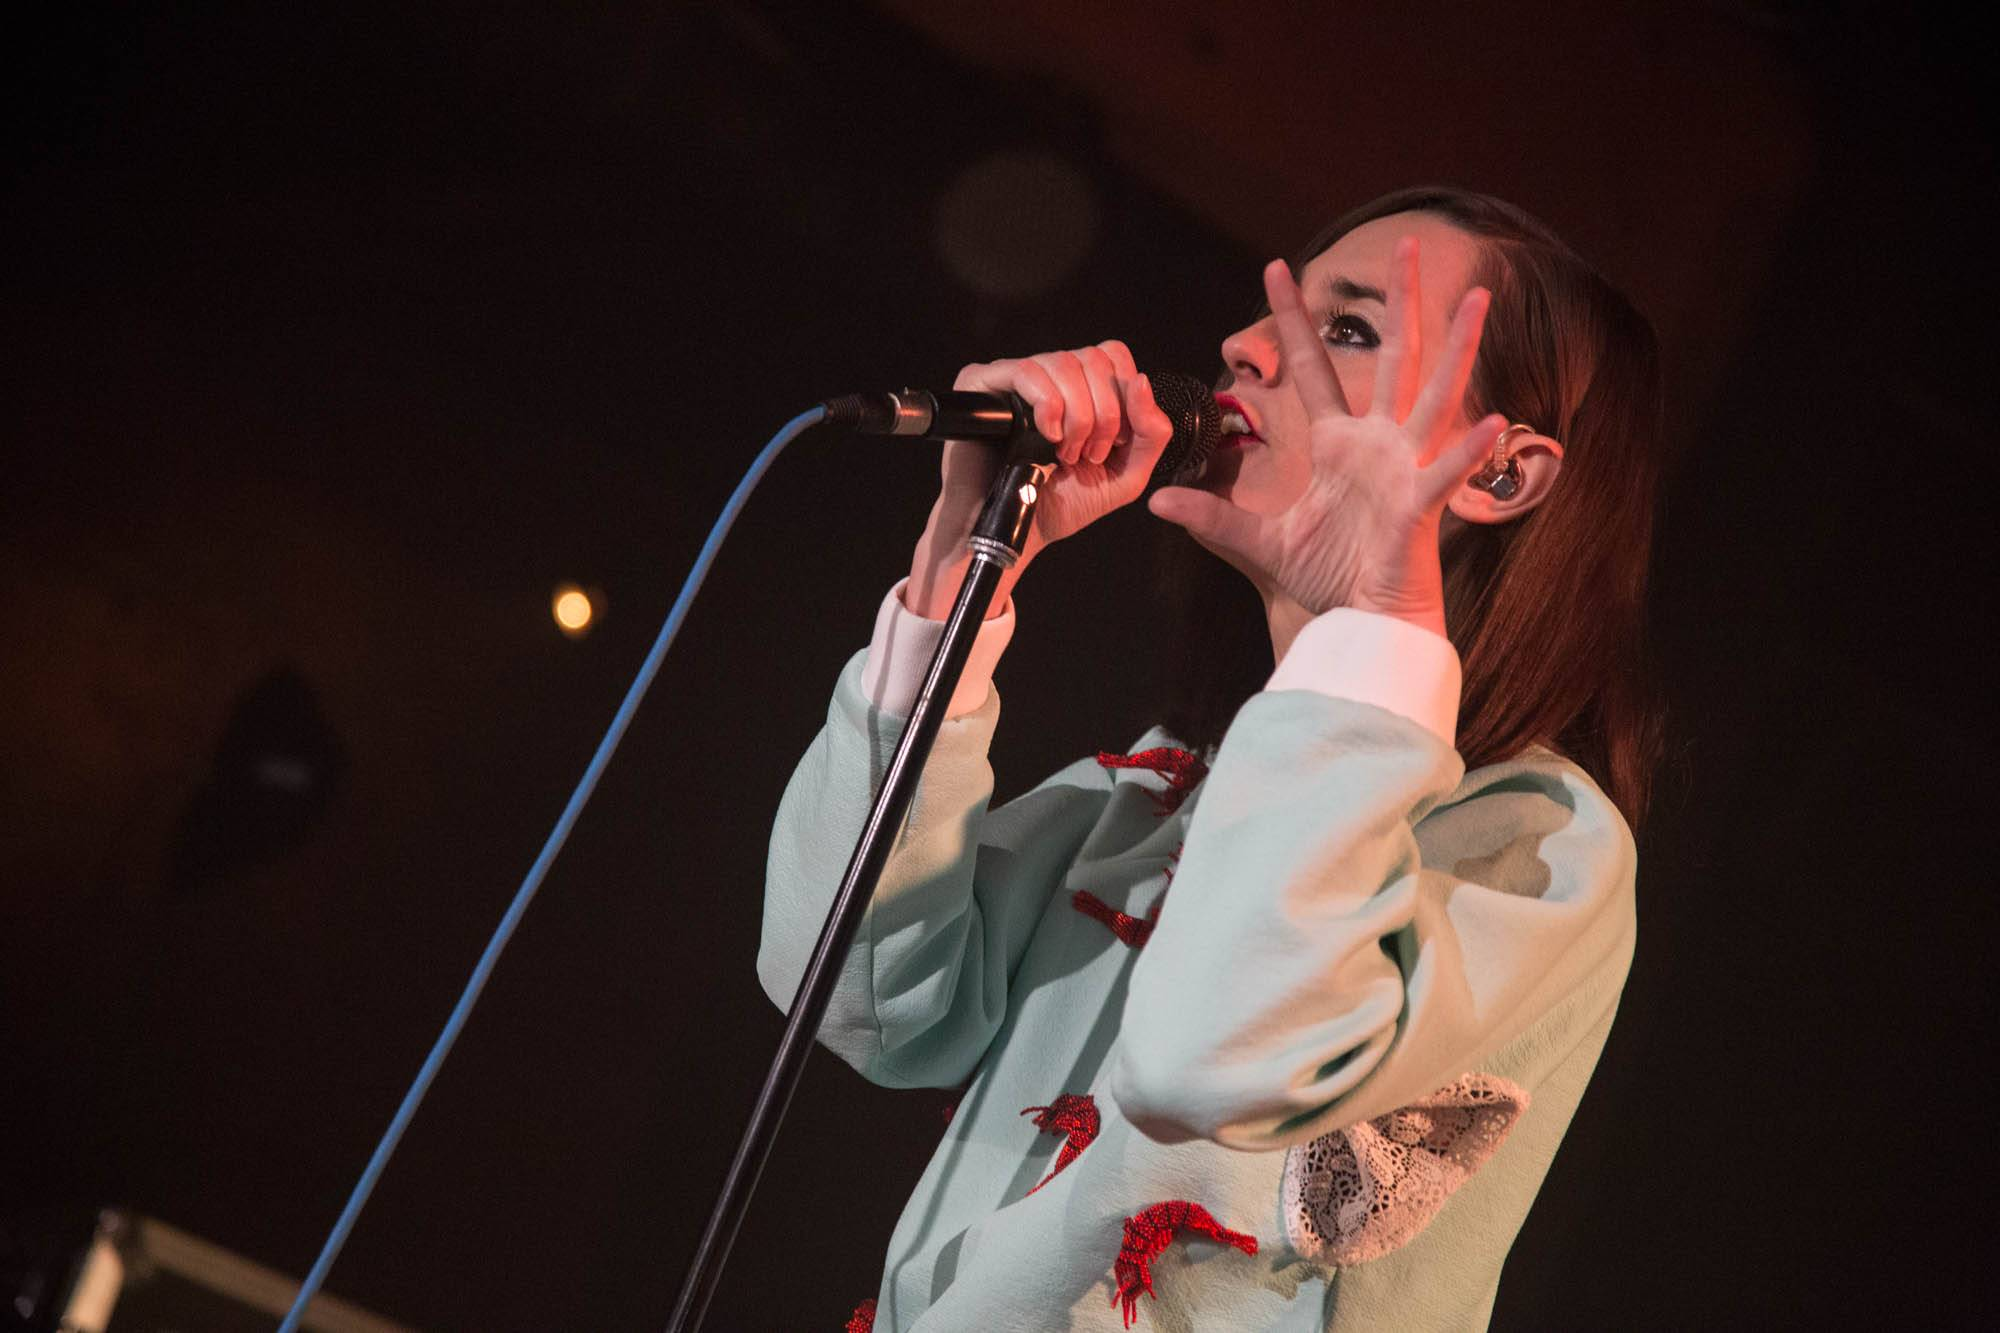 Yelle At Fortune Sound Club The Snipe News